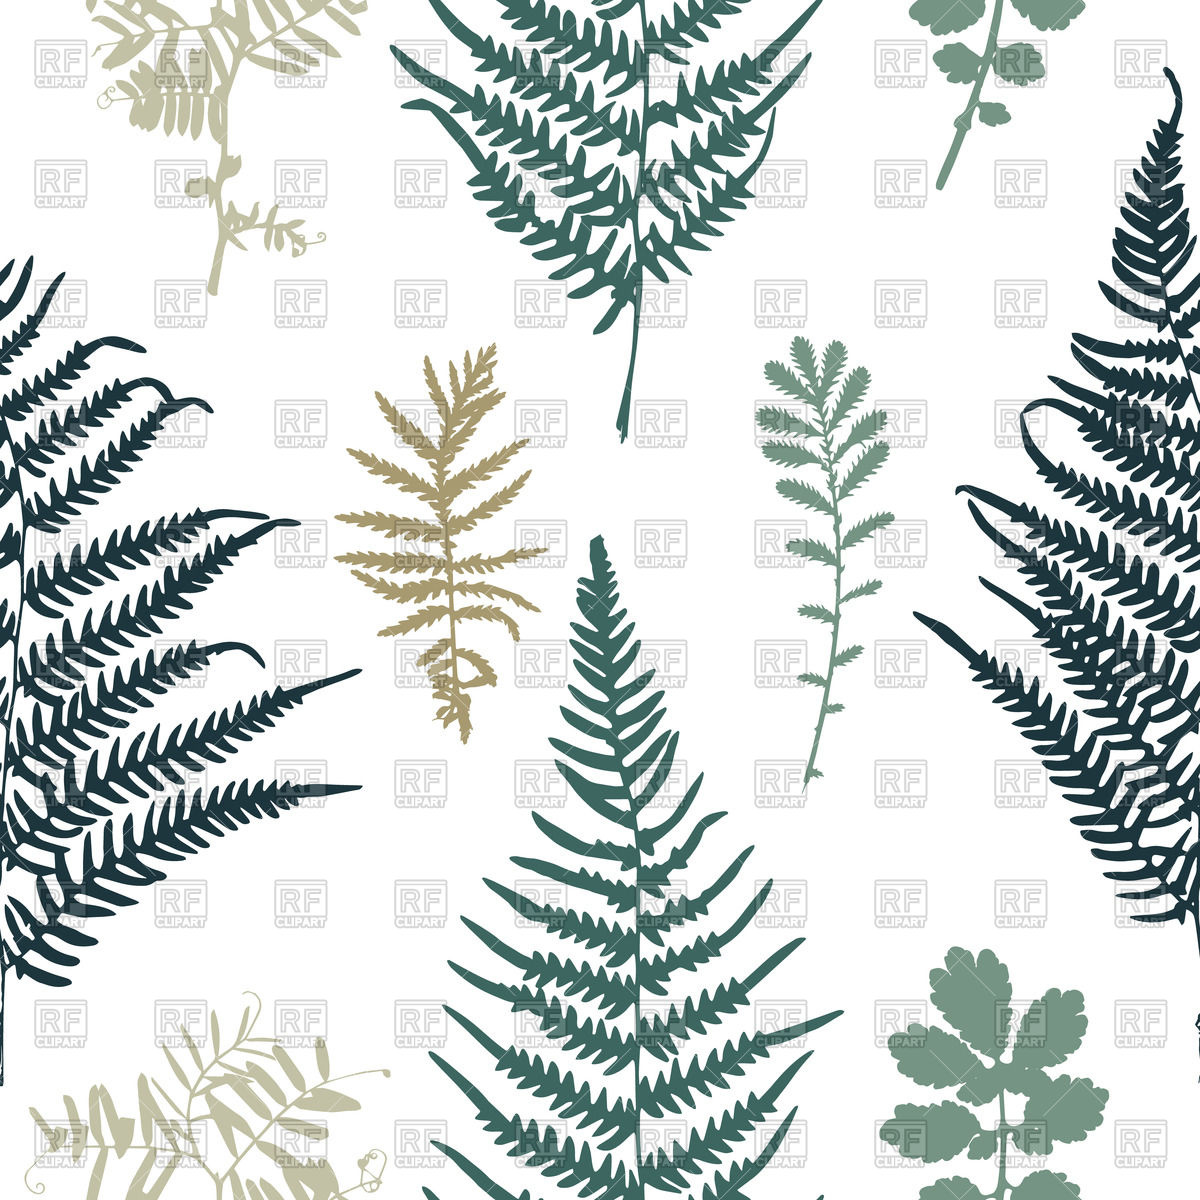 Seamless pattern with leaves of fern Vector Image #70996.